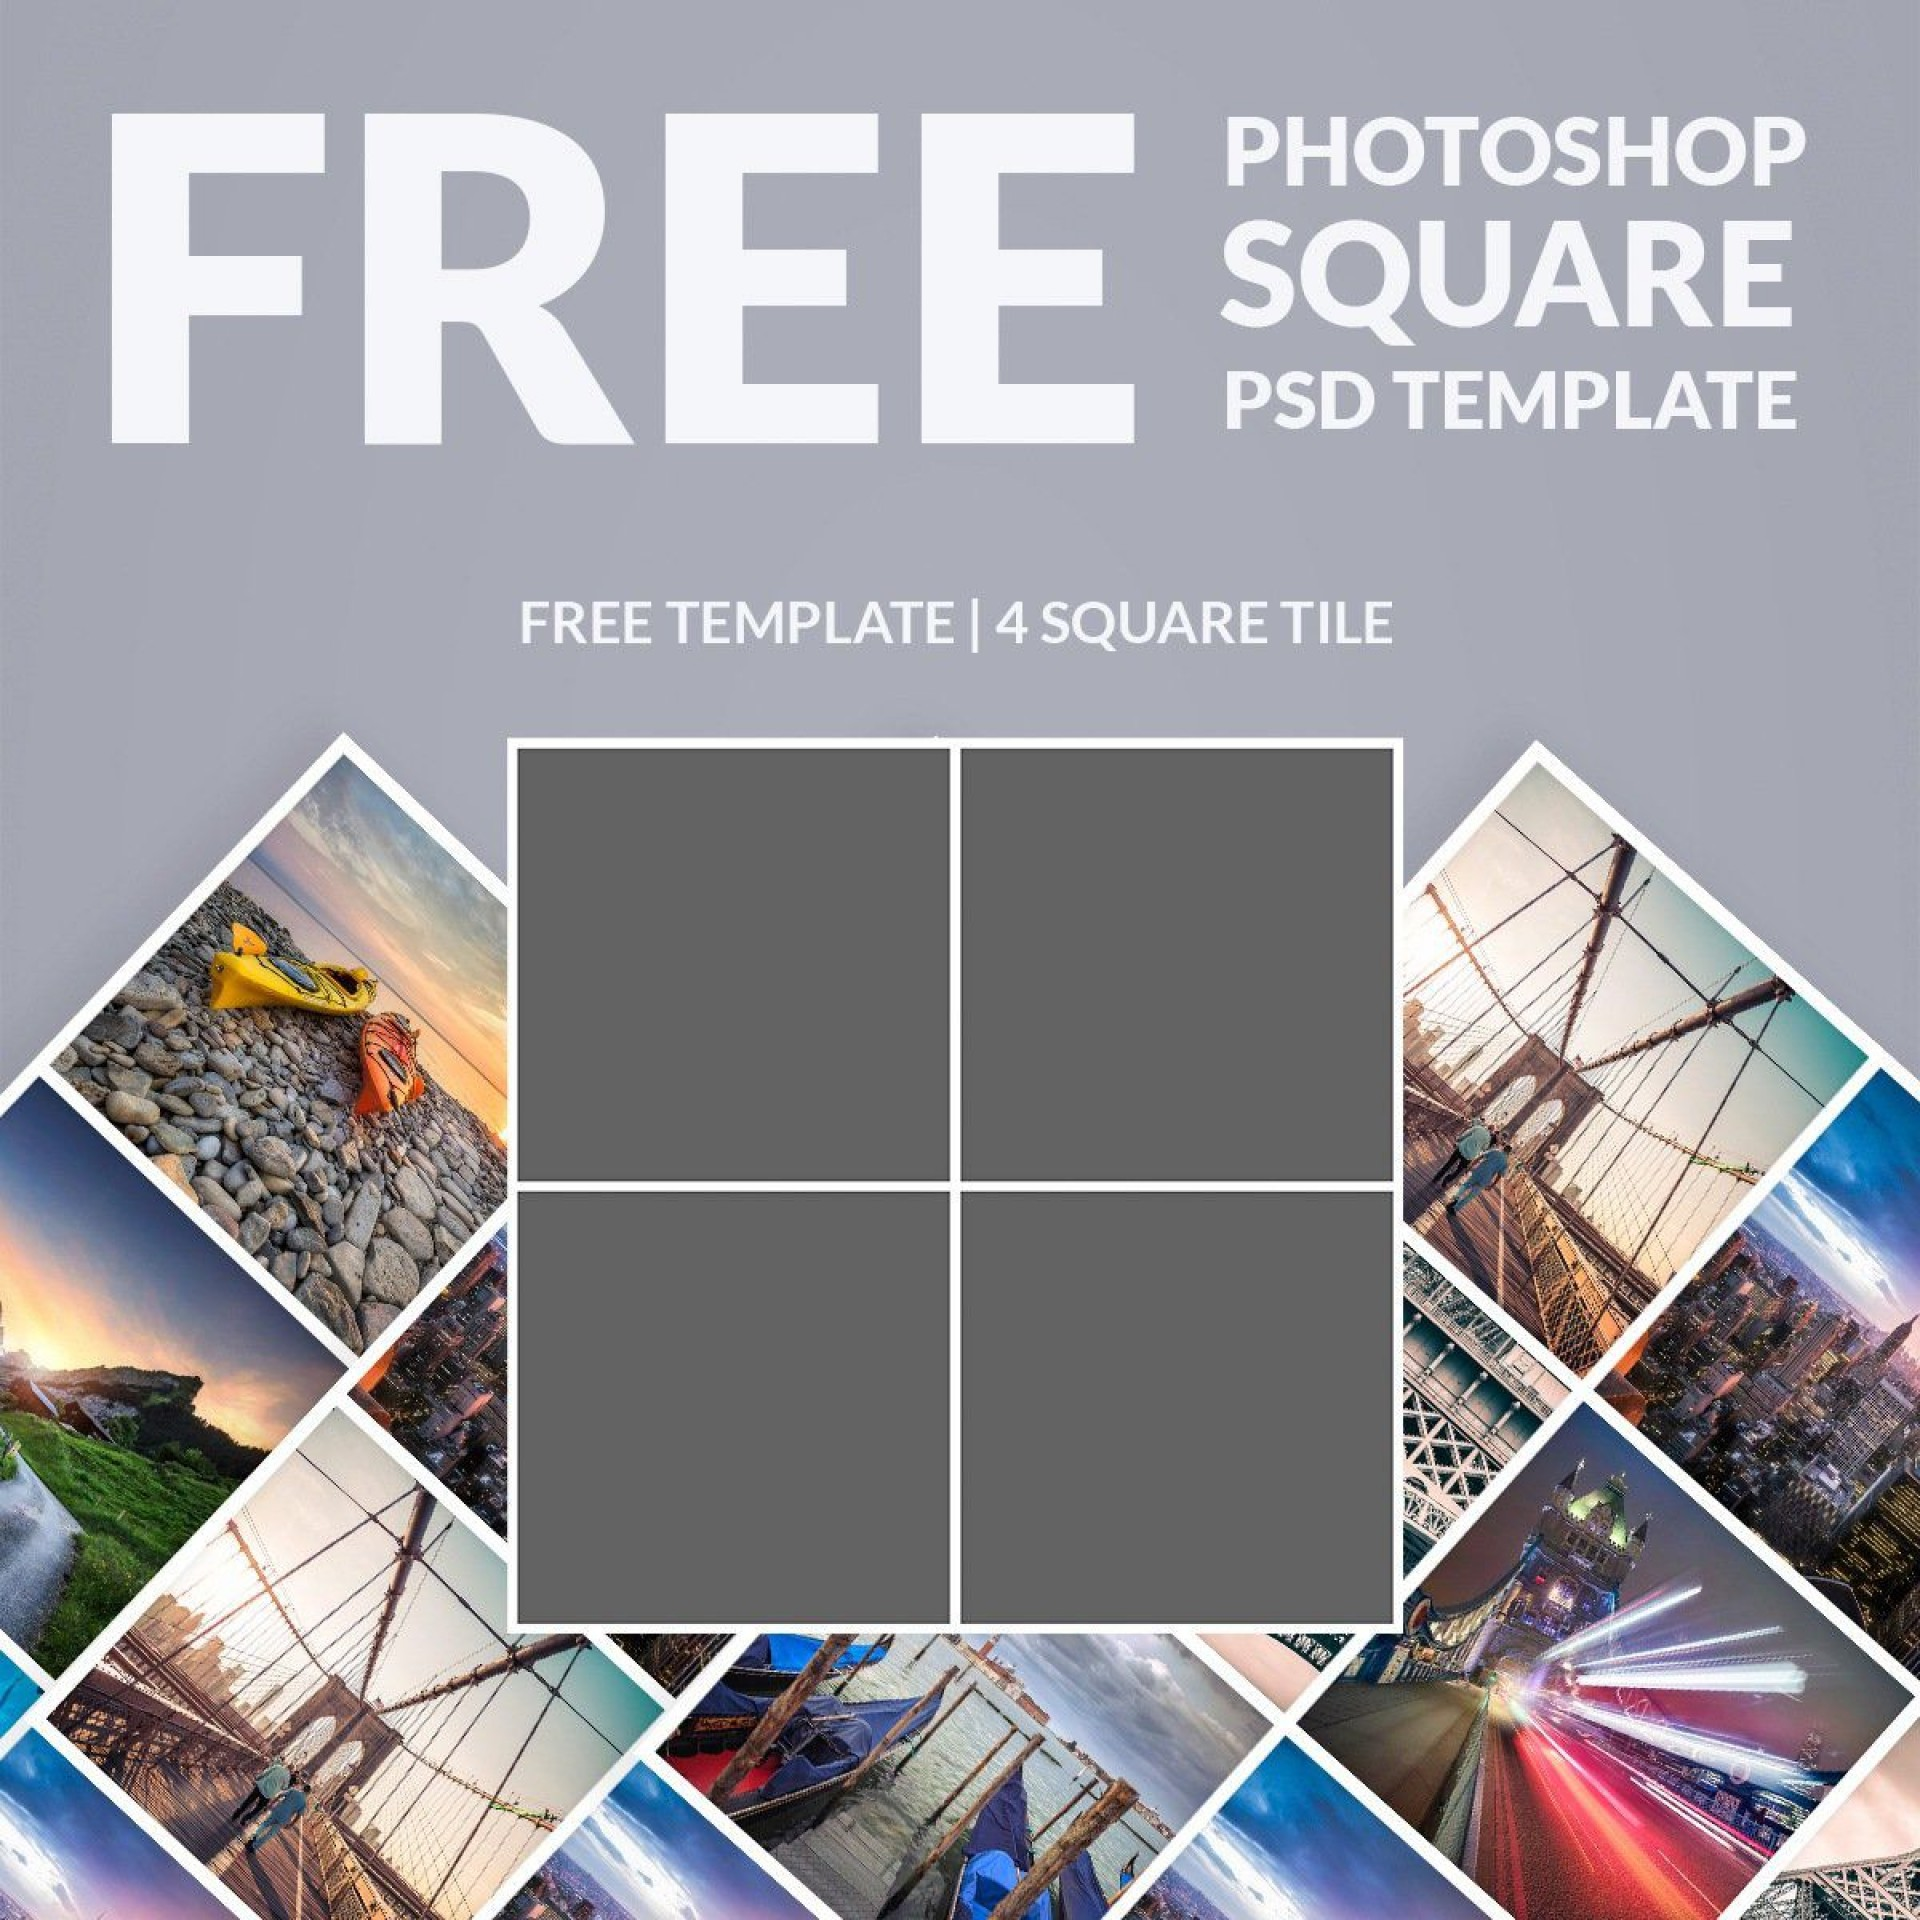 003 Archaicawful Free Photo Collage Template Download Inspiration  Picture Psd Powerpoint1920